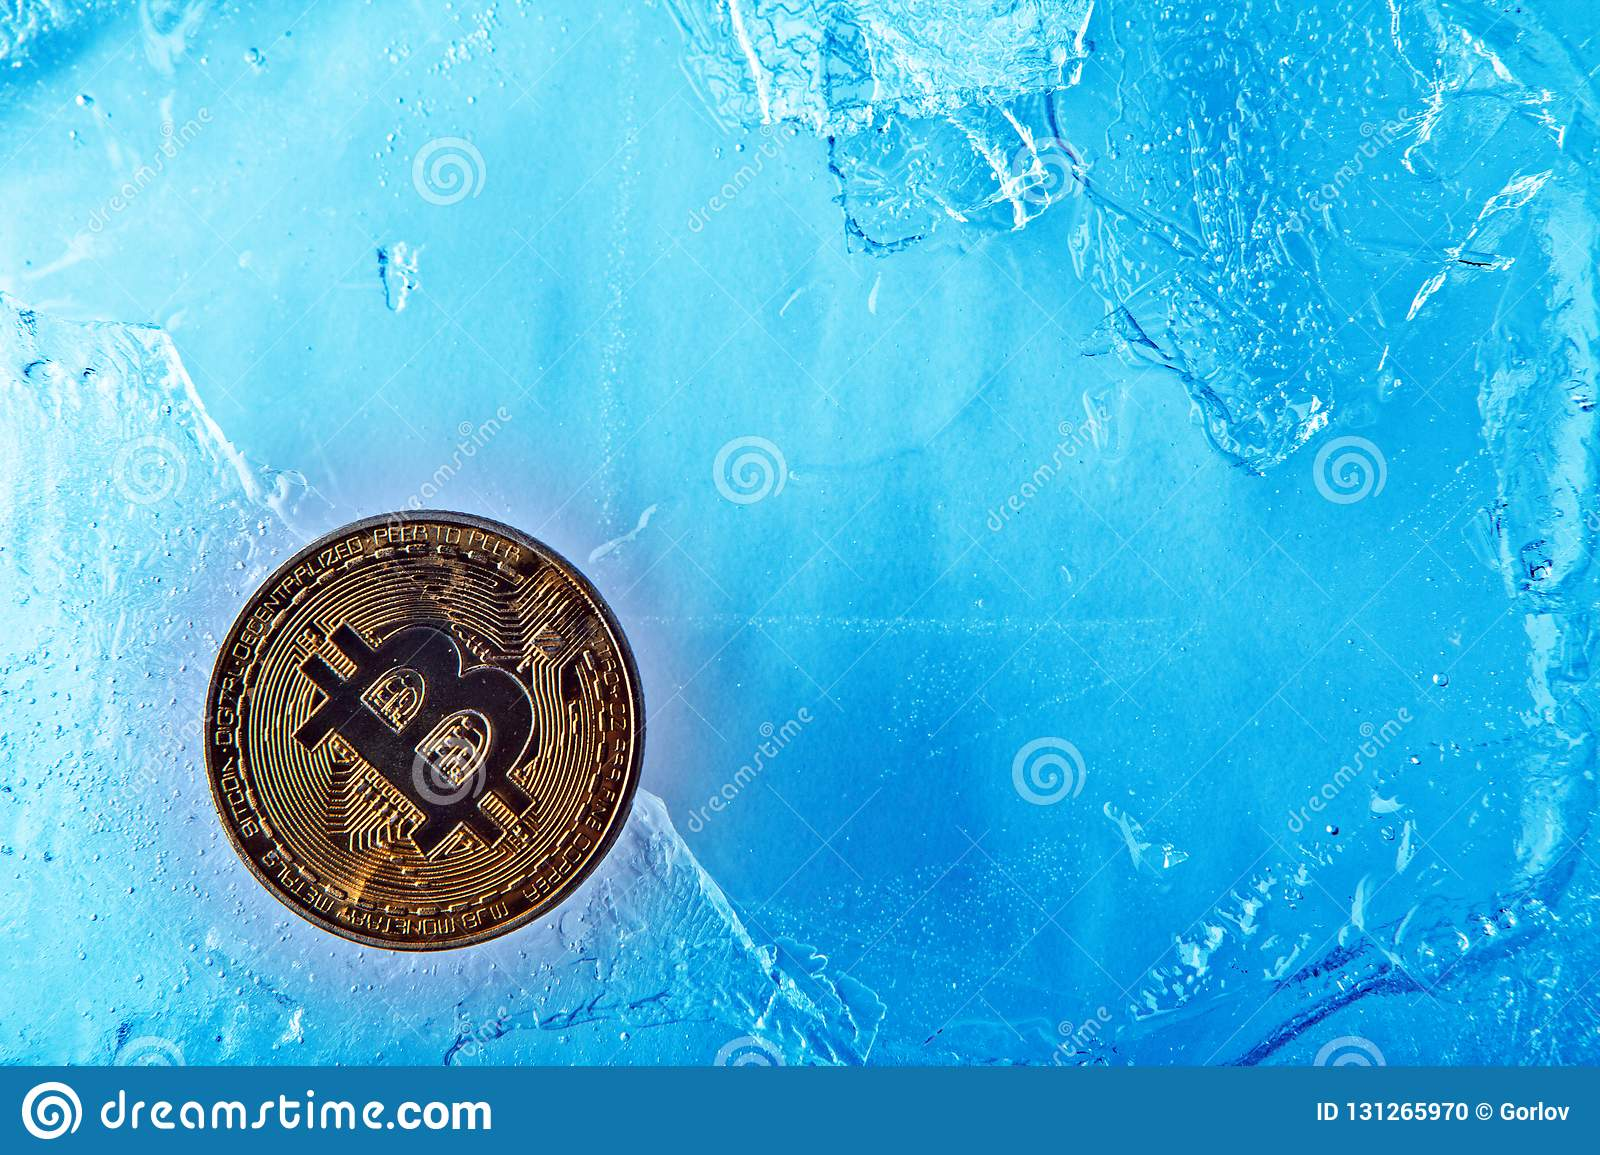 Bitcoins wiki frozen past simple vs past continuous betting game